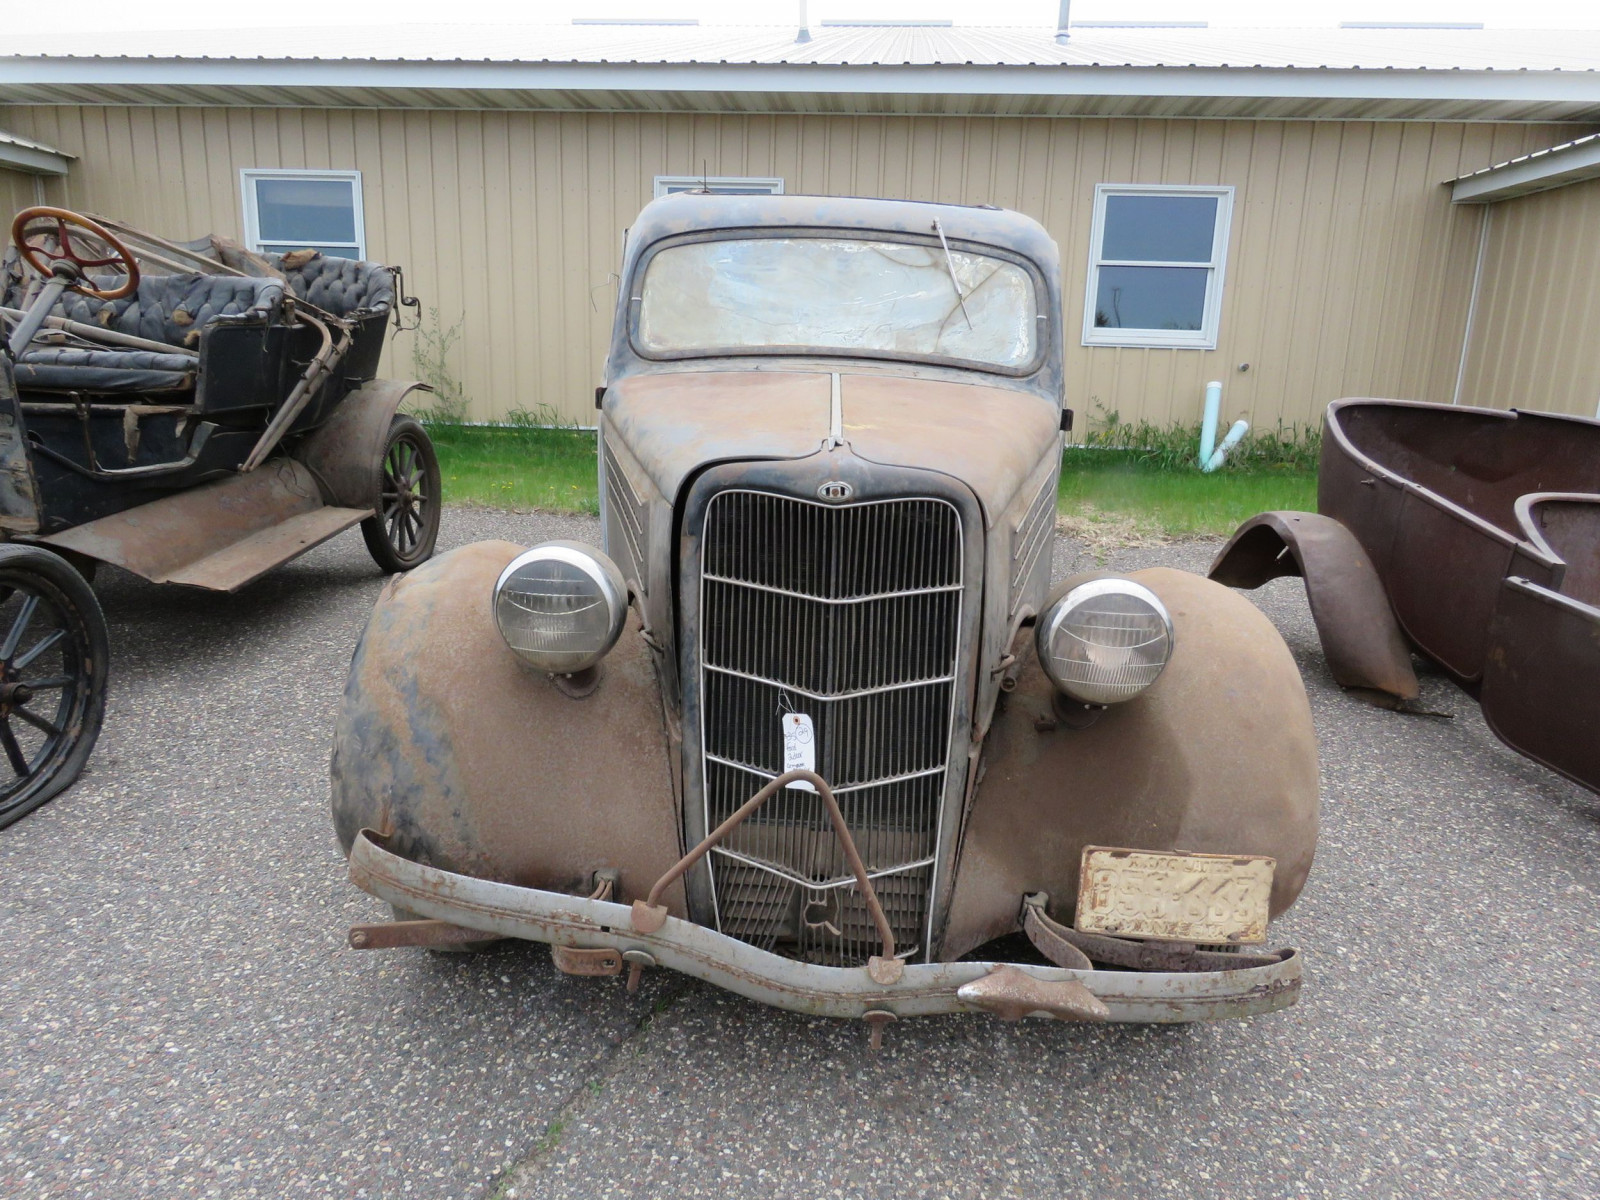 1935 Ford Tudor Sedan for Project or Parts - Image 2